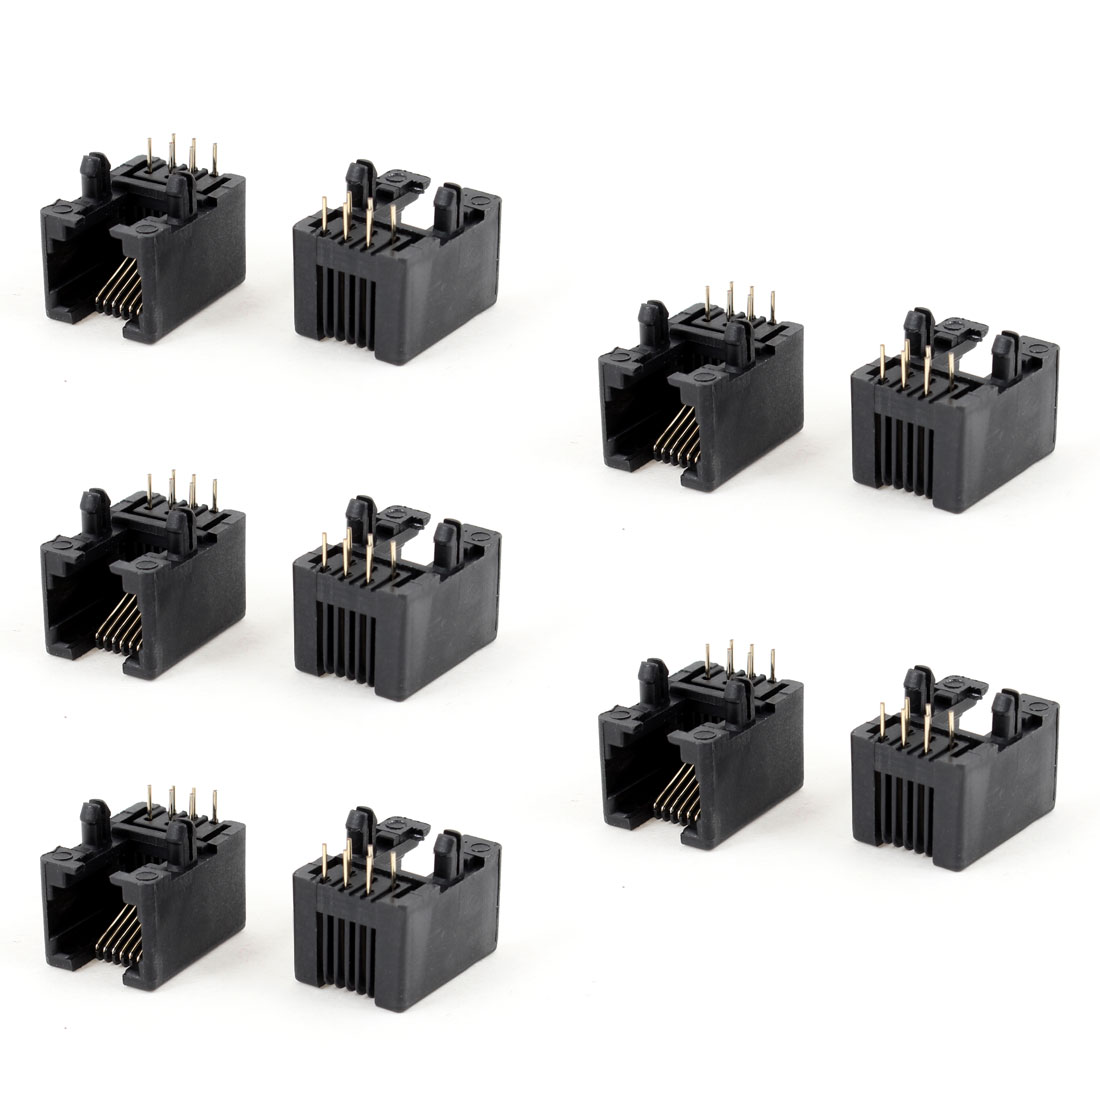 10 Pcs 90 Degree 6 Round Pin RJ12 6P6C Network Modular PCB Connector Jacks Black